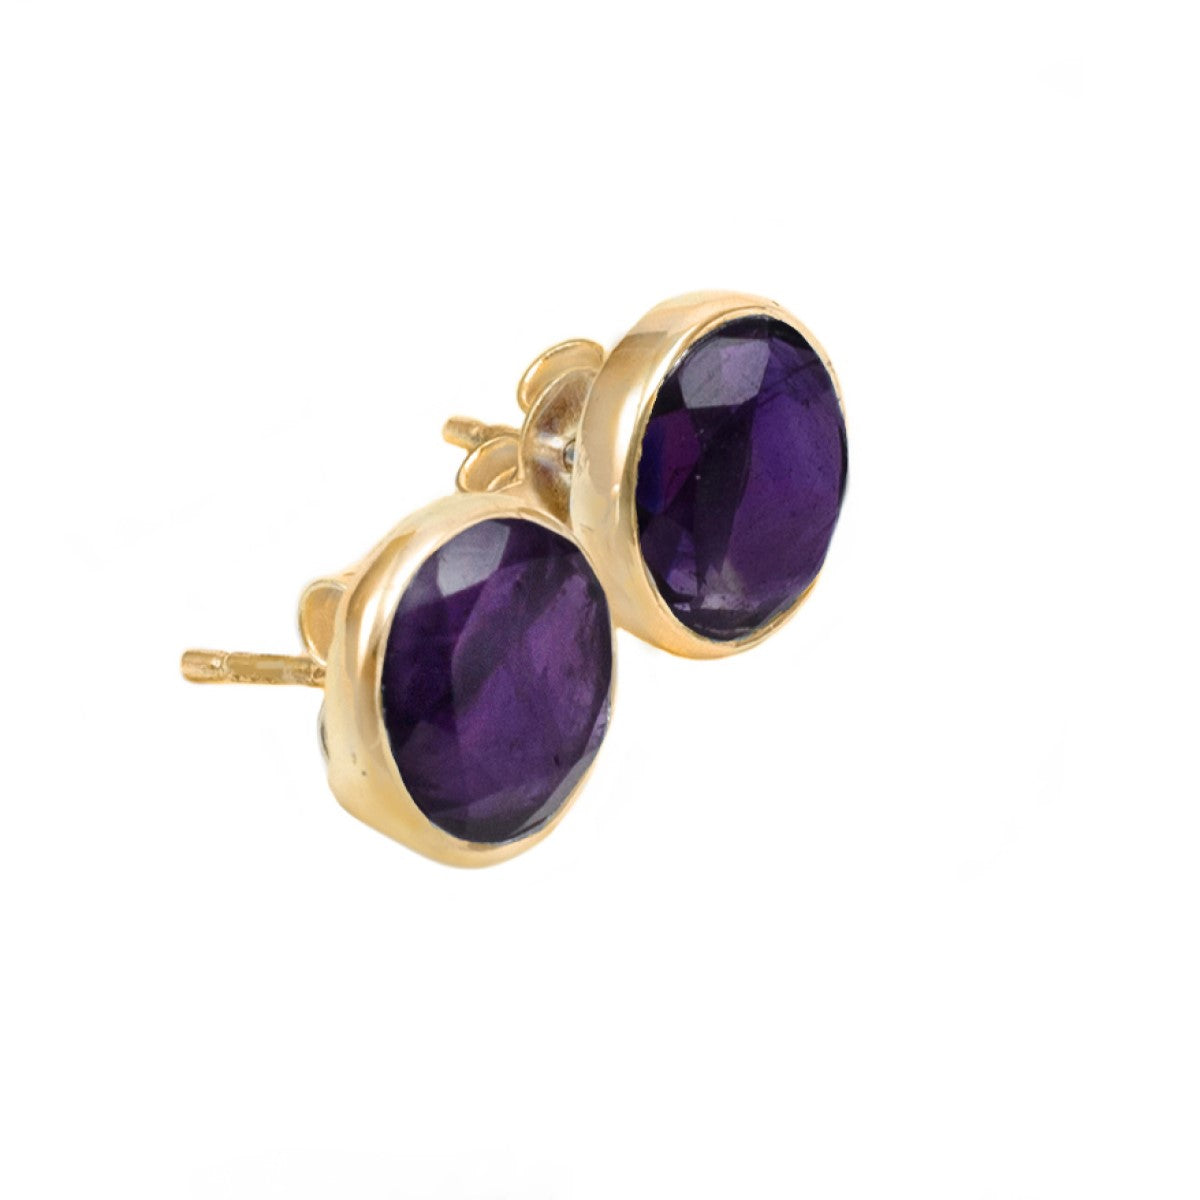 Amethyst Studs in Gold Plated Sterling Silver with a Round Faceted Gemstone